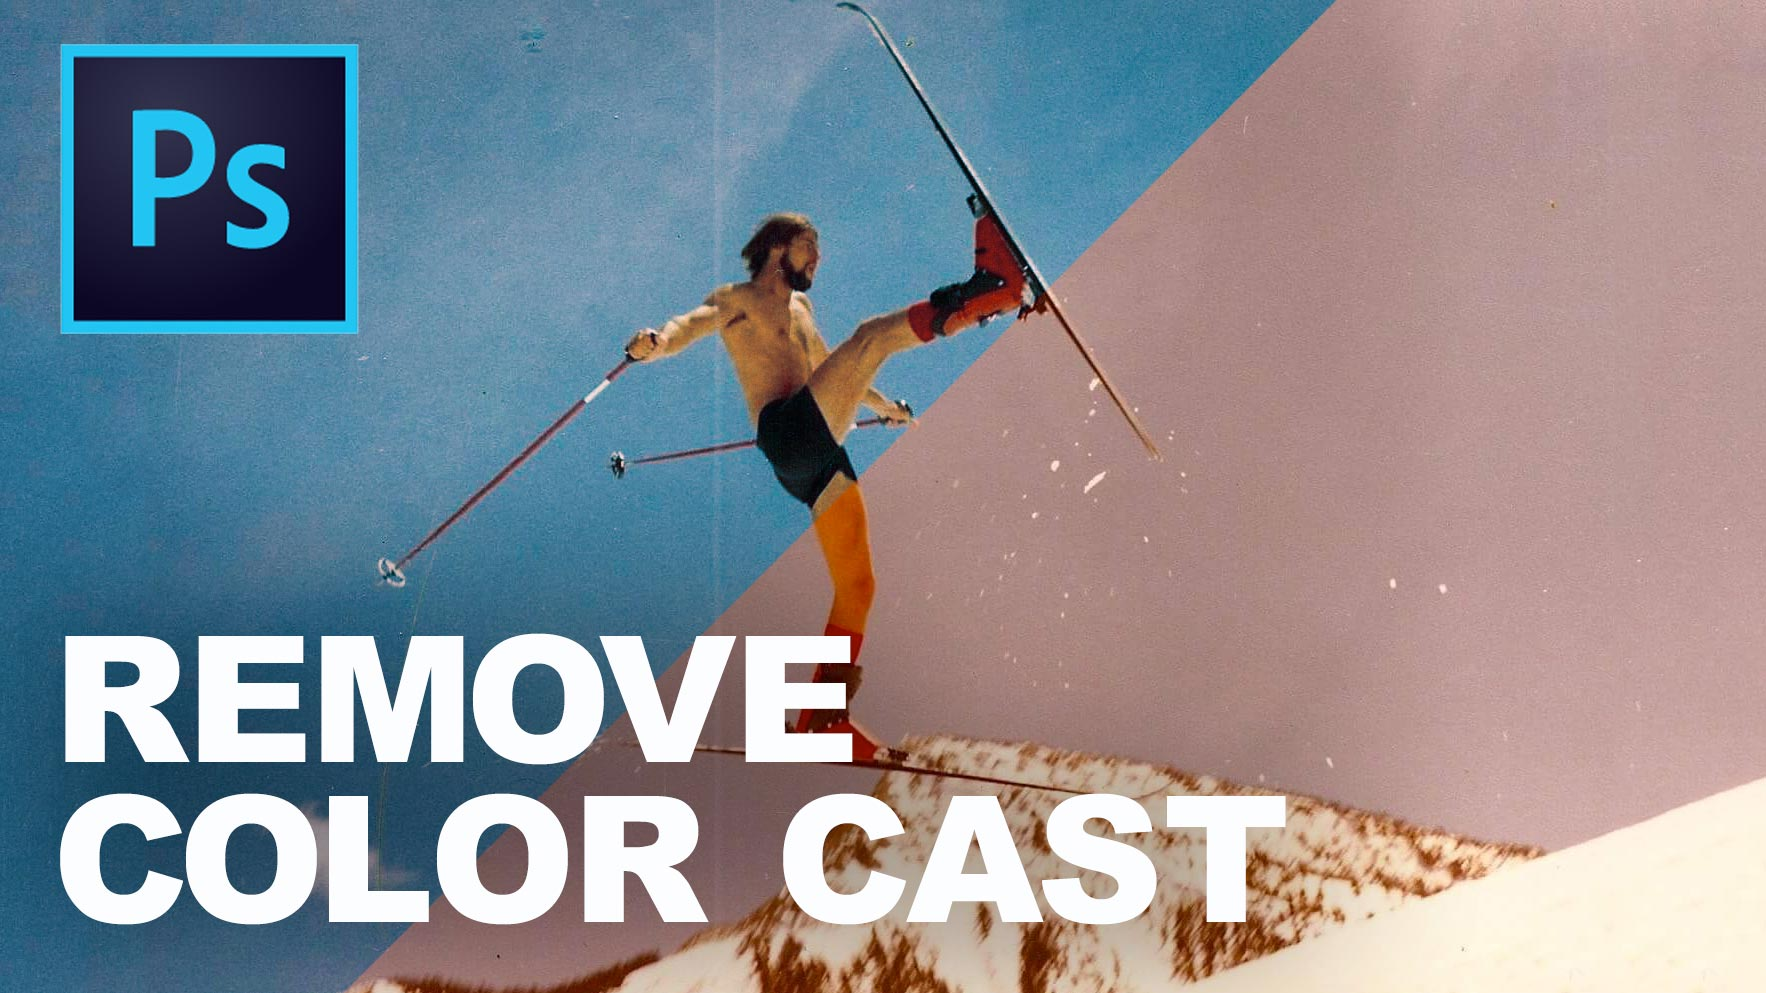 How to fix color cast in photoshop - How To Remove A Color Cast In Photoshop In 3 Easy Steps